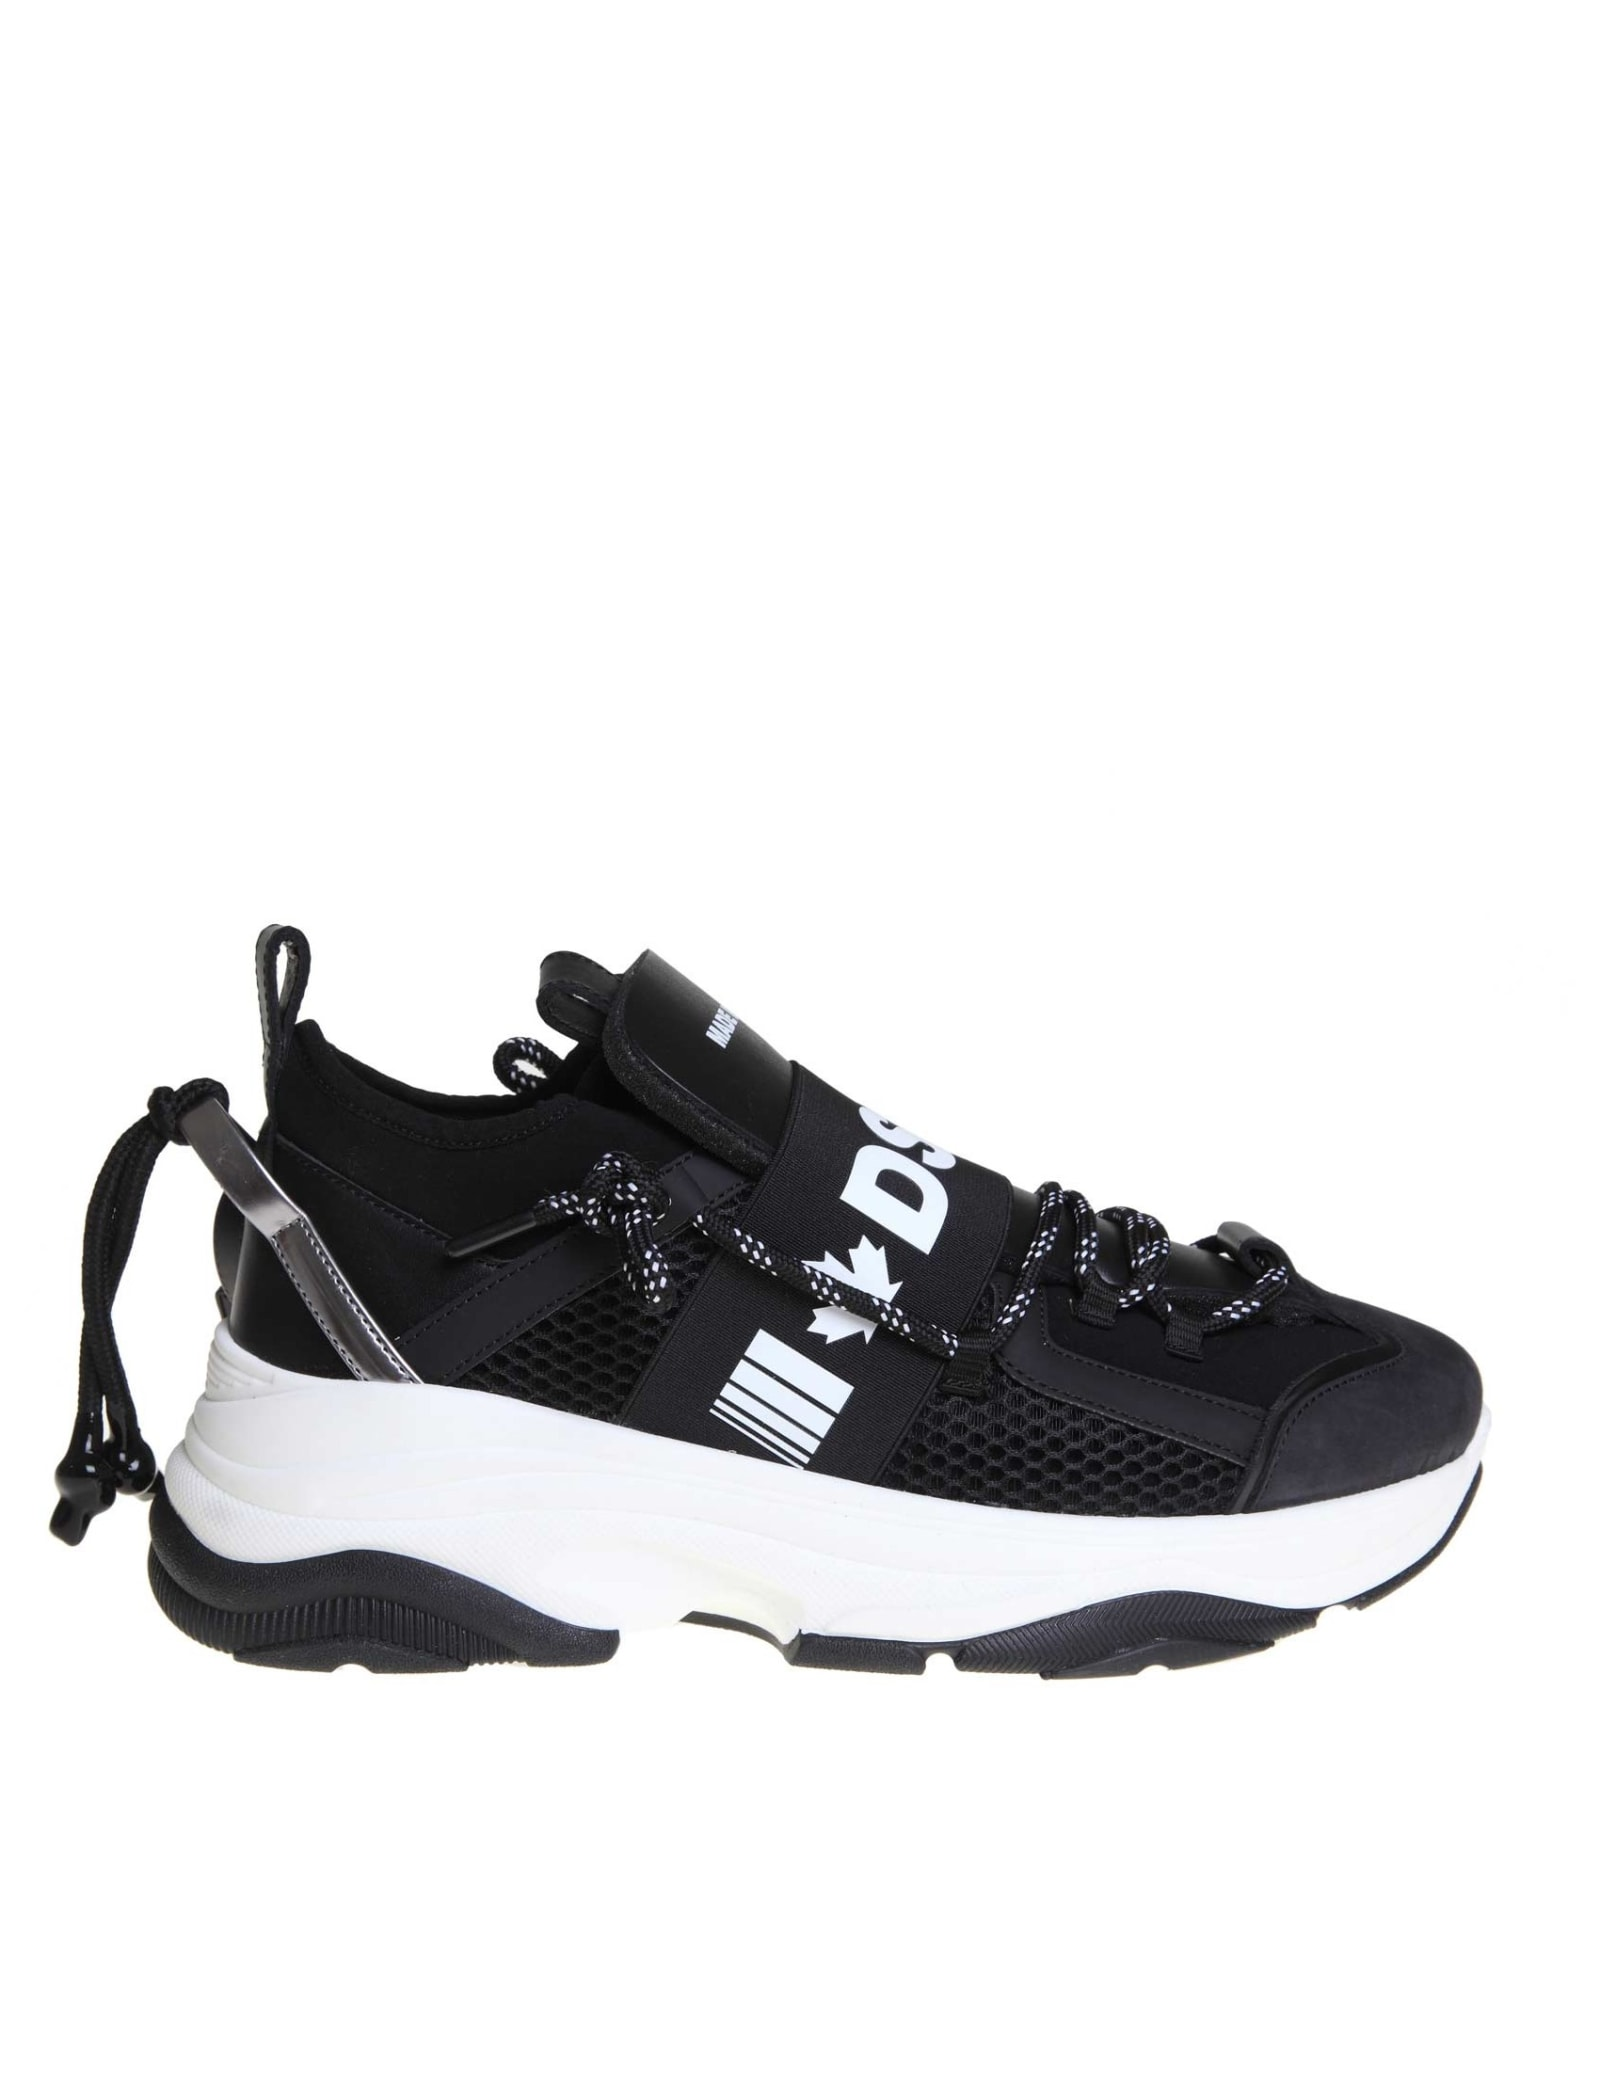 dsquared sneakers black friday